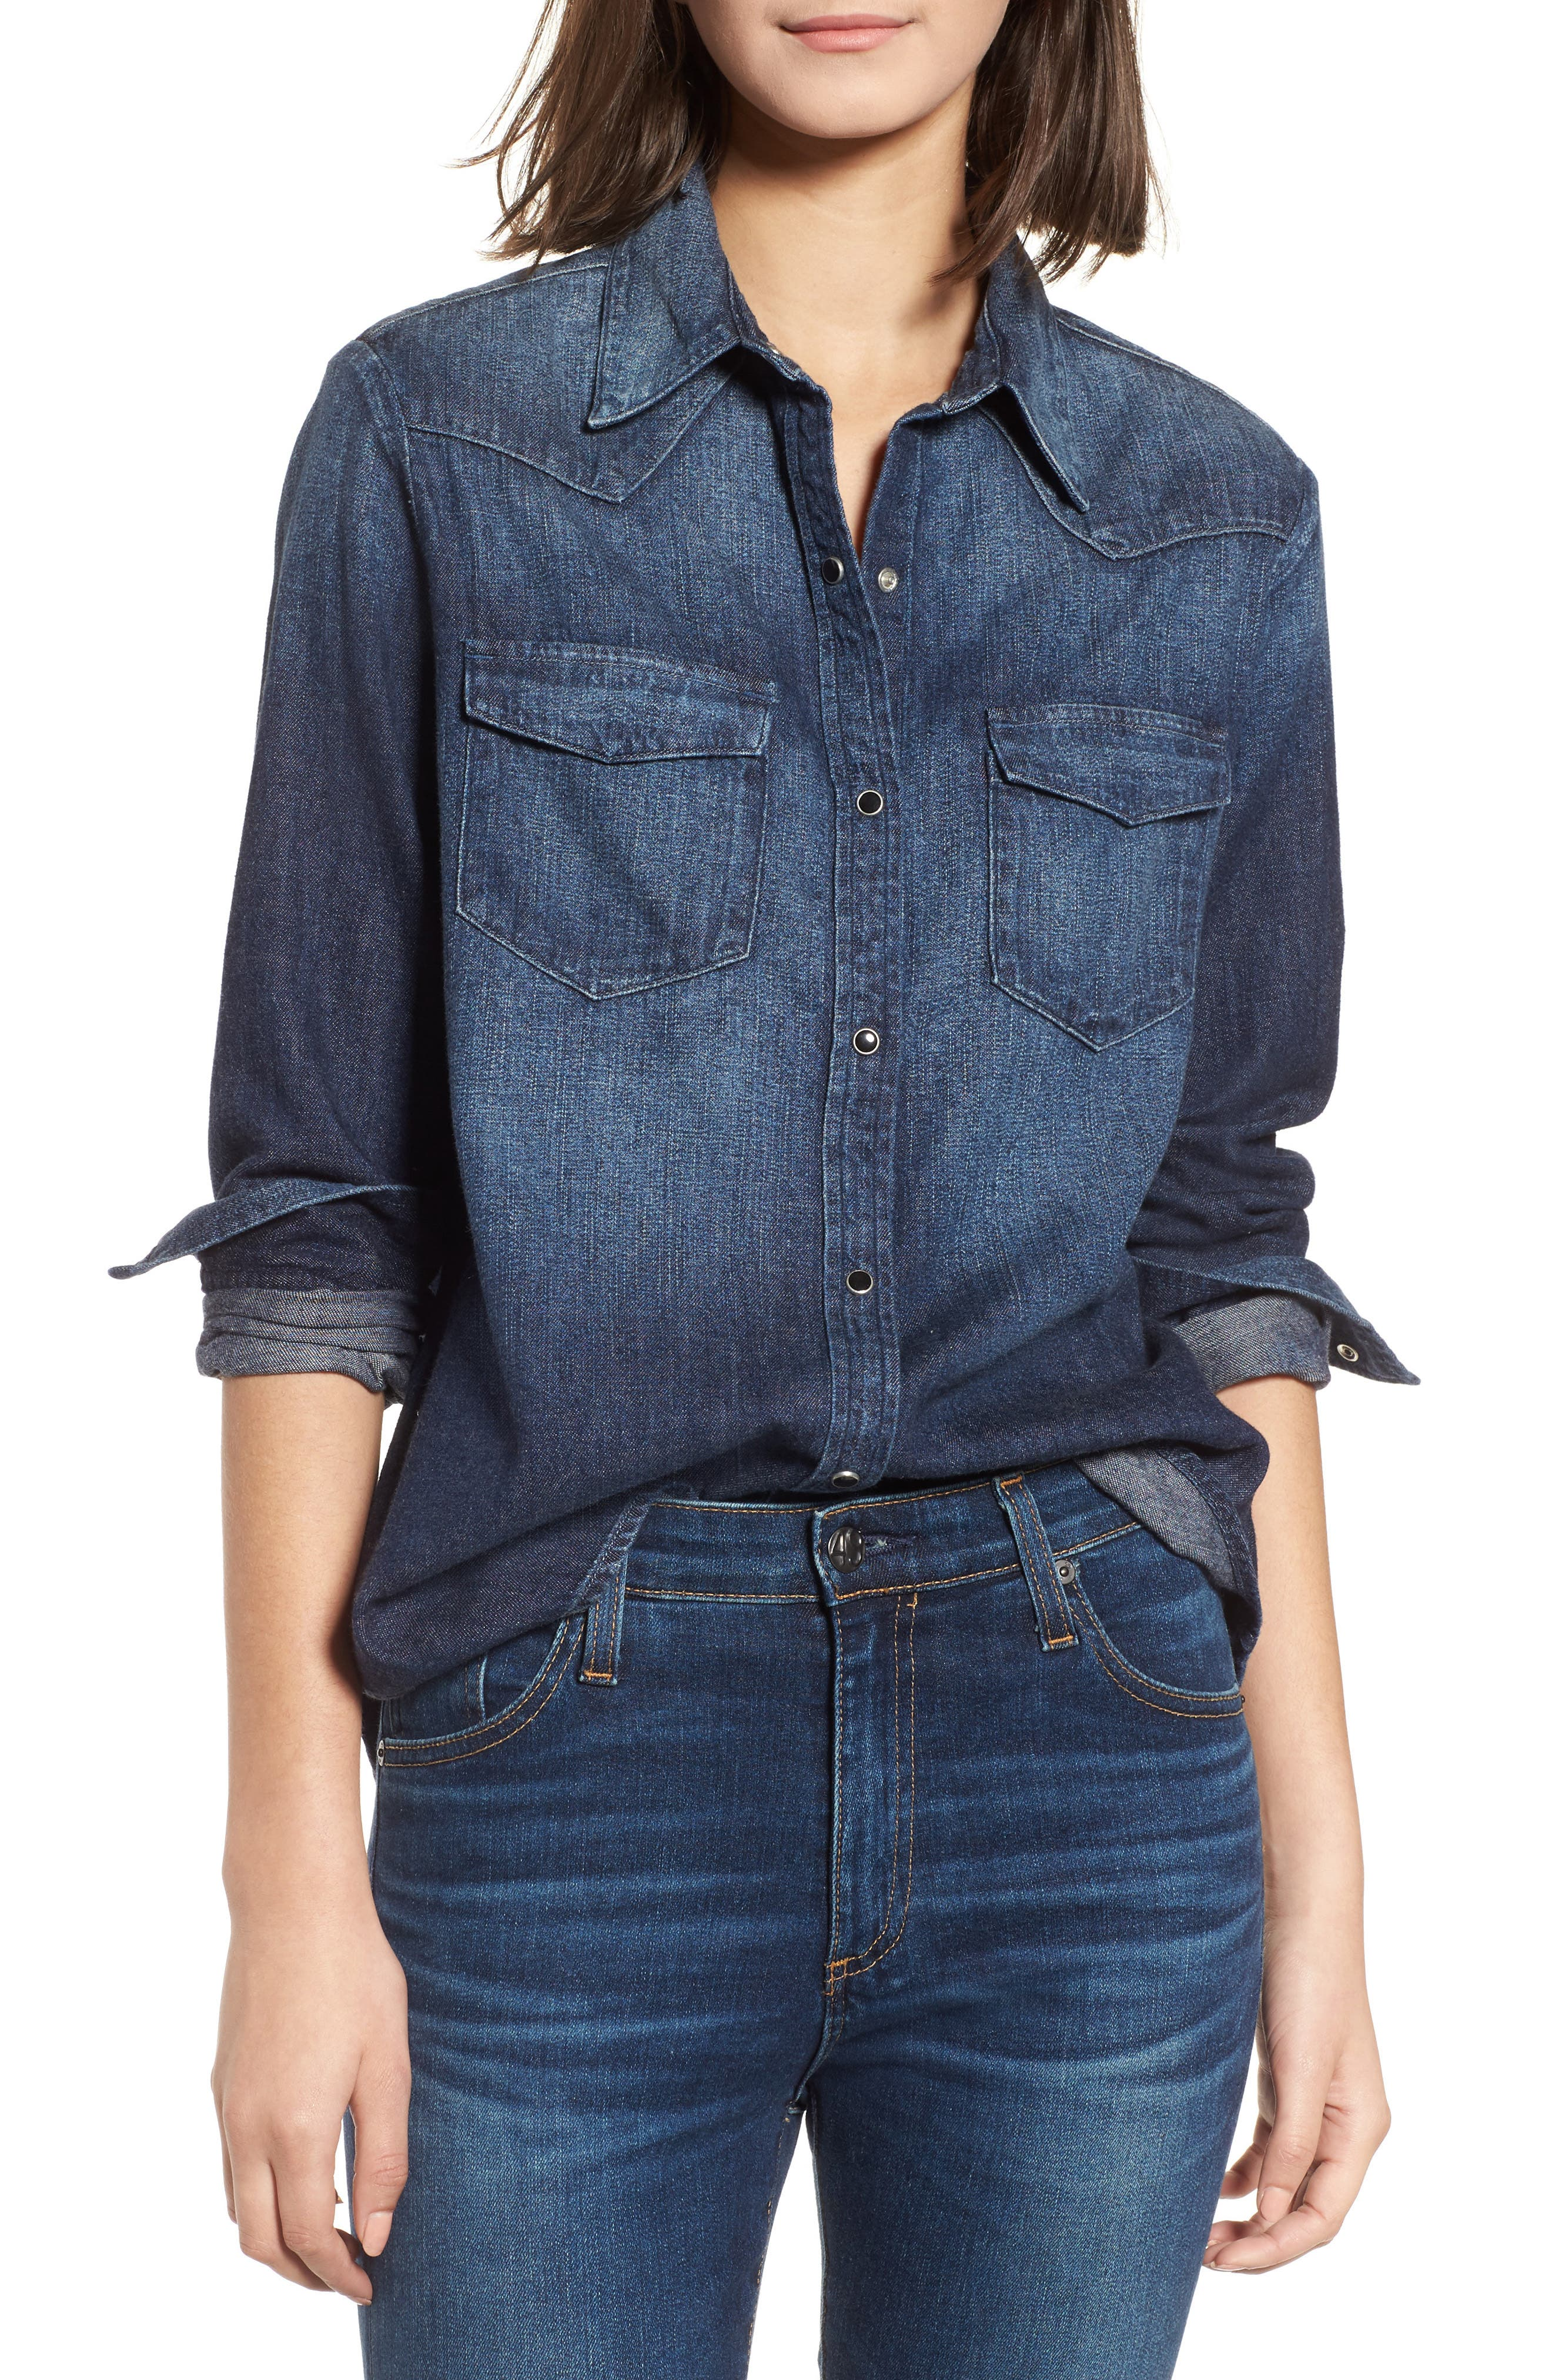 Deanna Denim Shirt,                         Main,                         color, Timeless